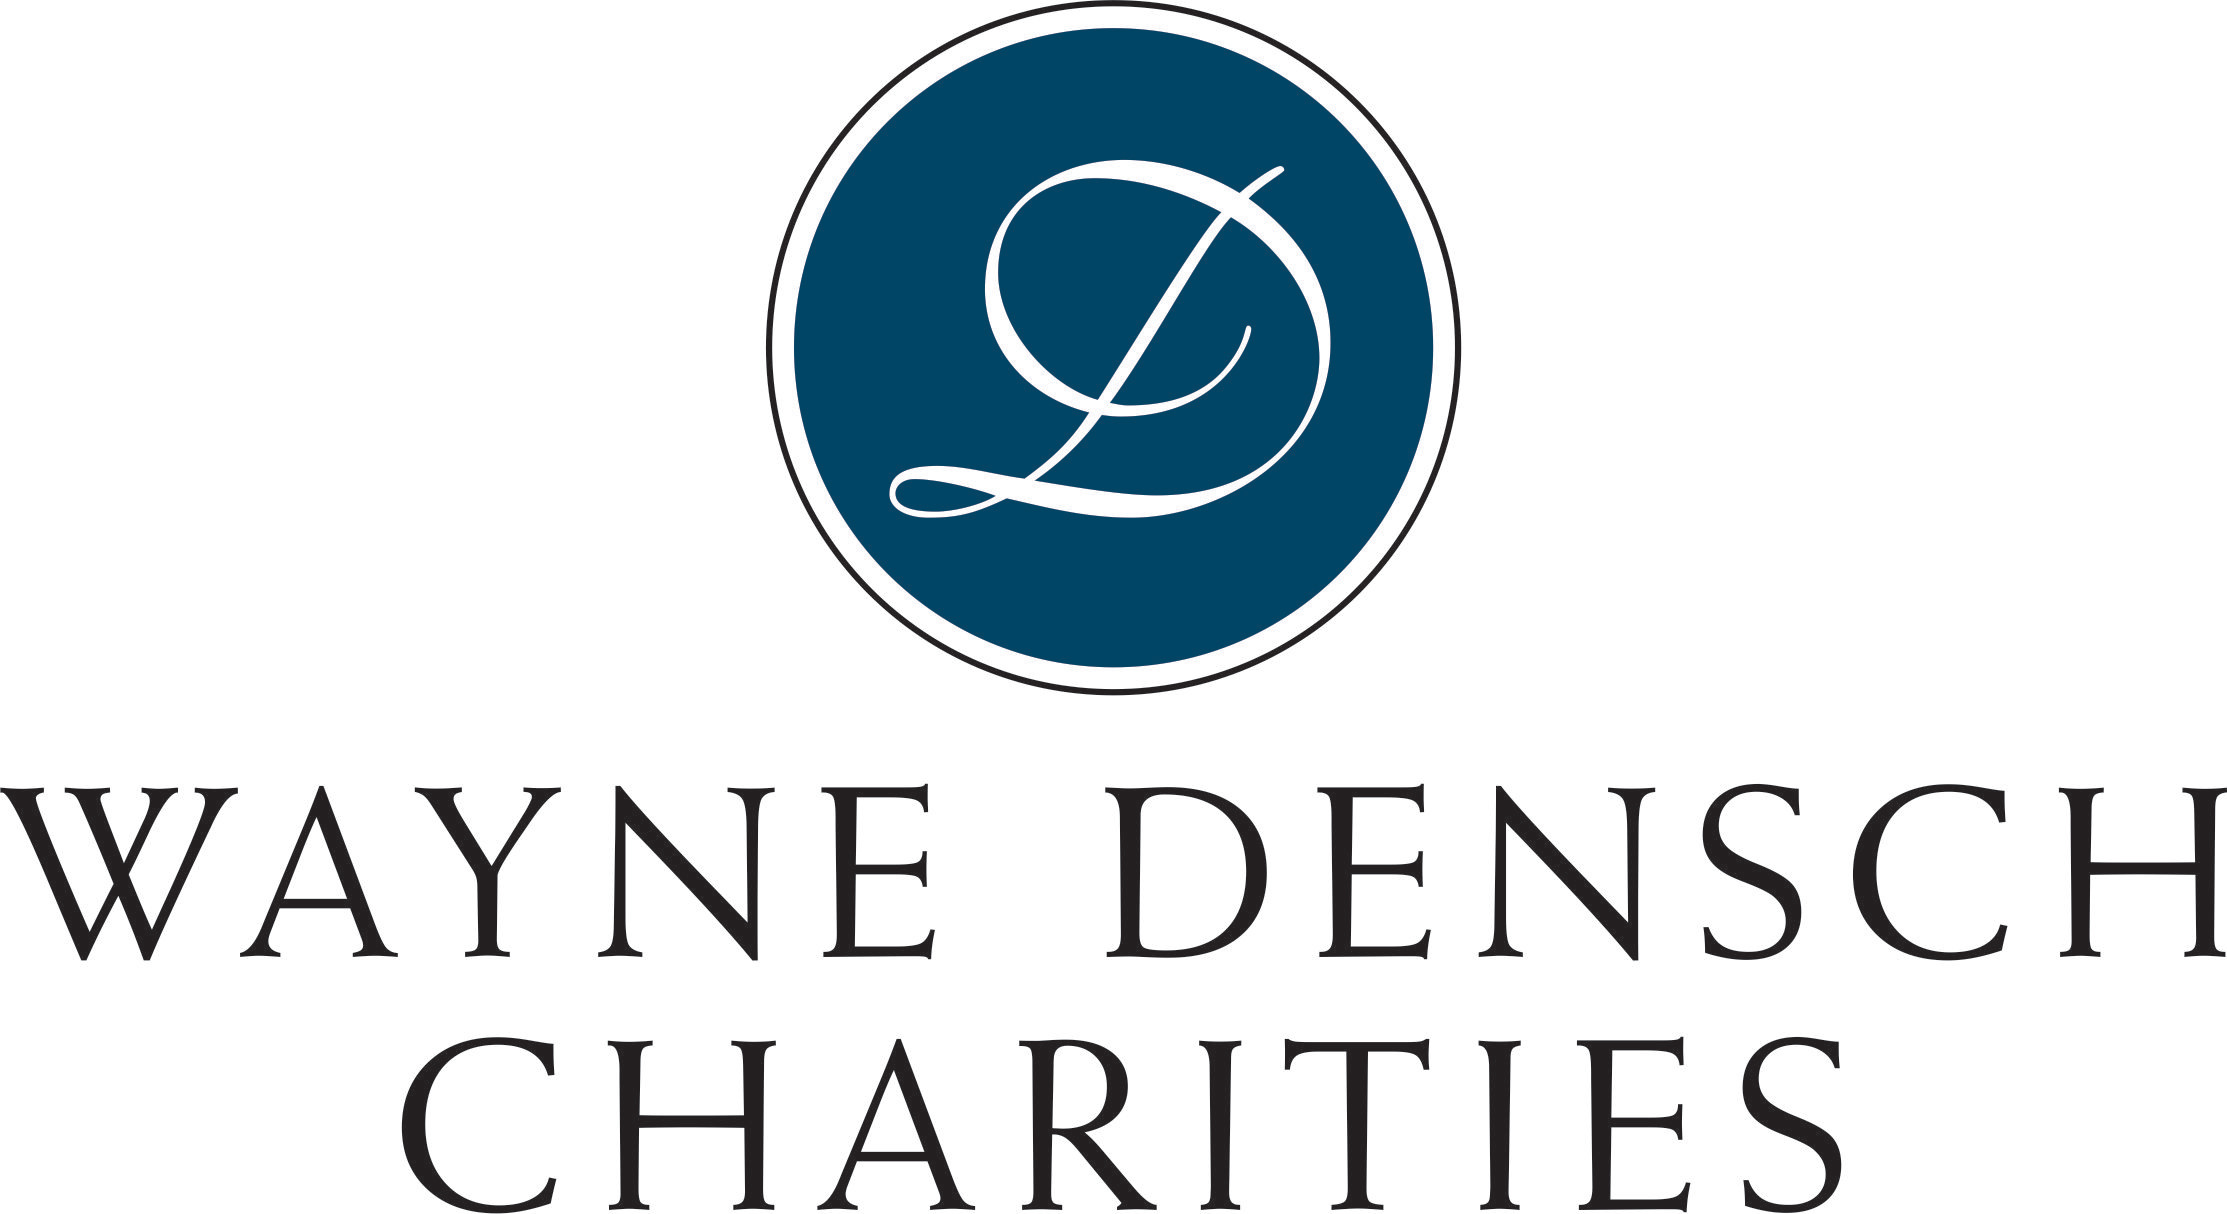 Wayne Densch Charities